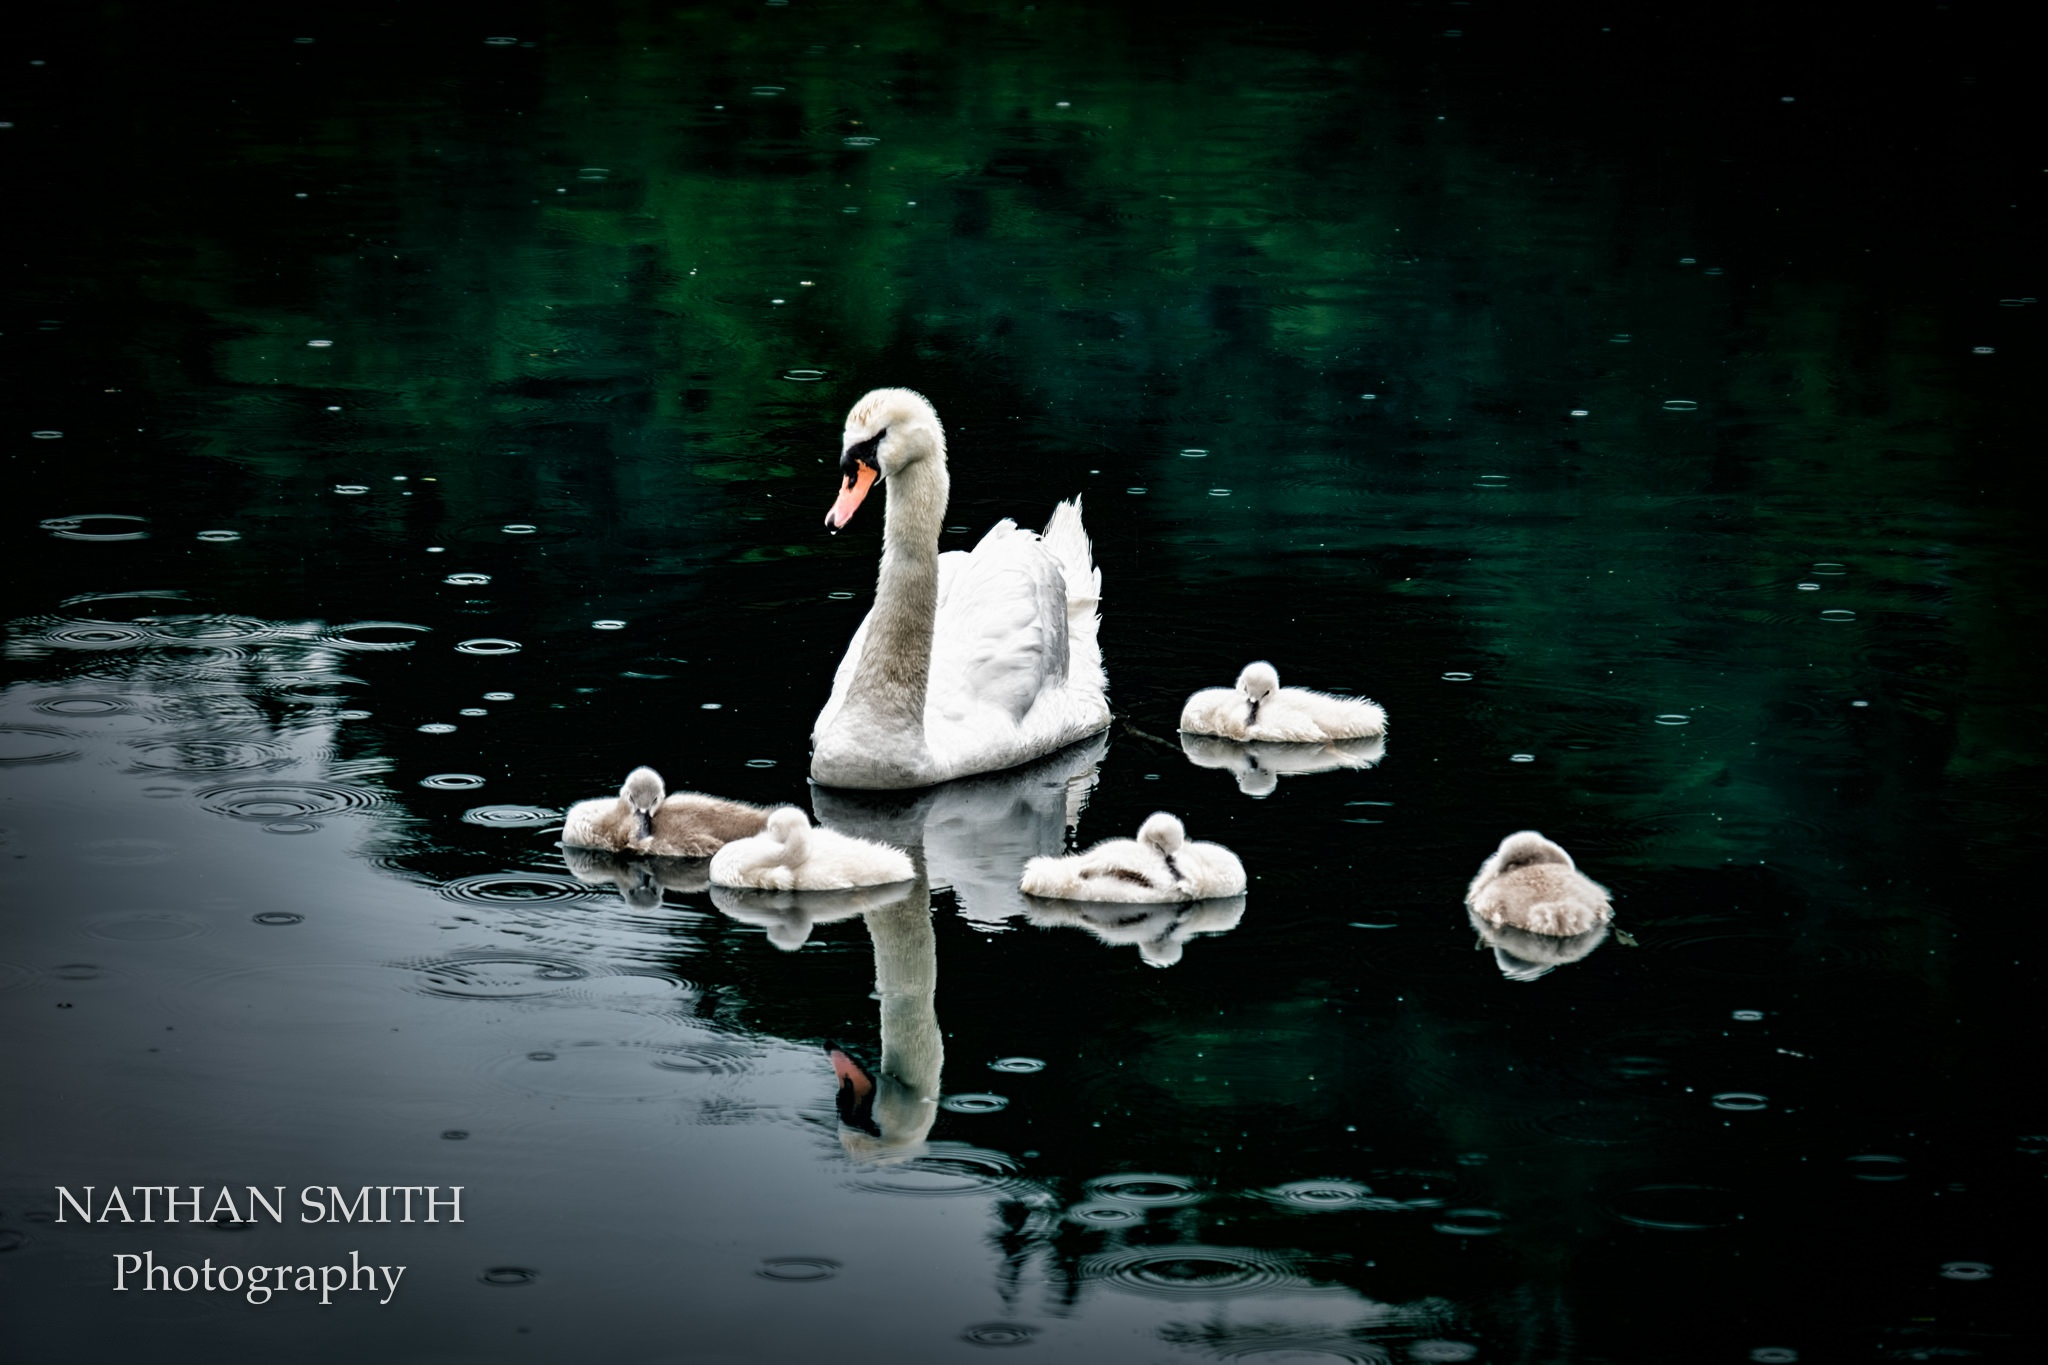 Baby swans with Mom by nathansmith